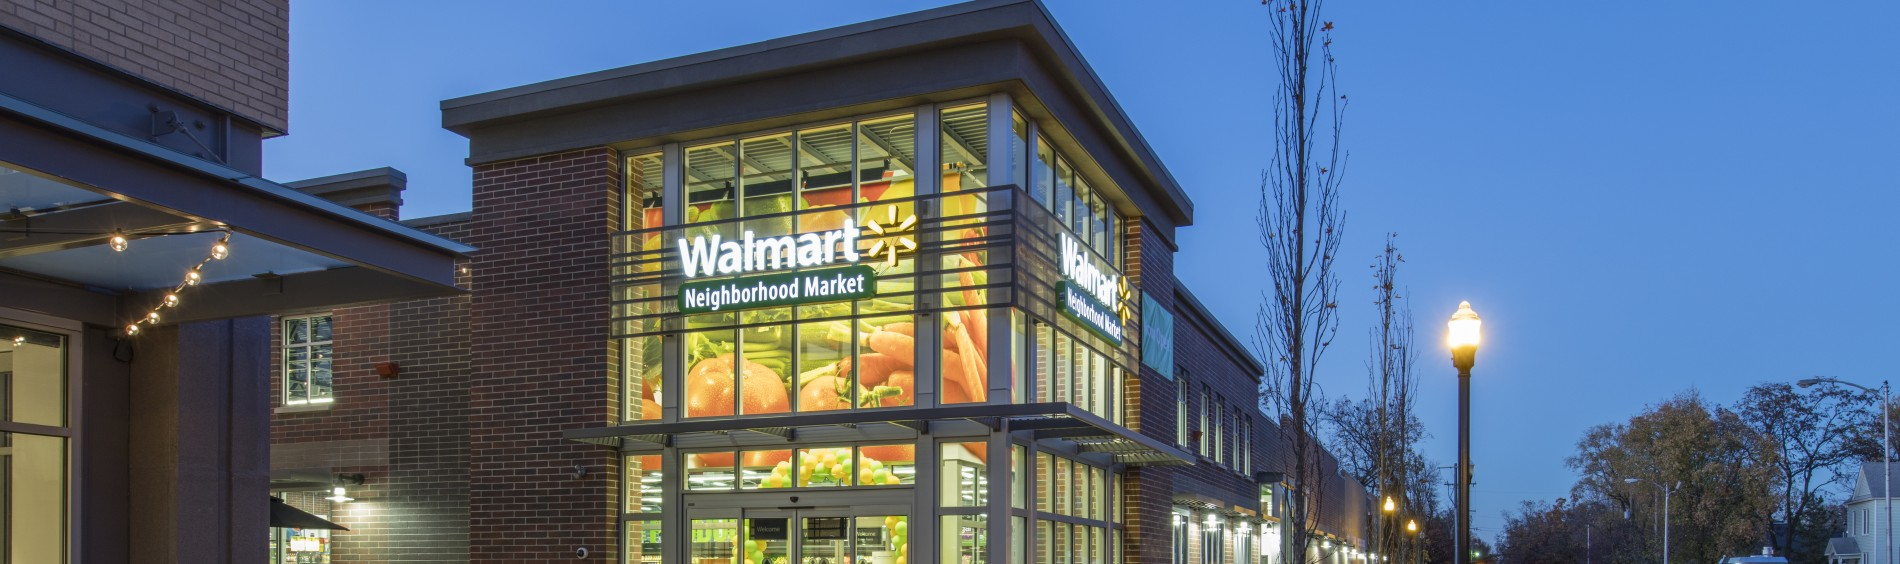 Walmart Corporate Contact >> Our Business